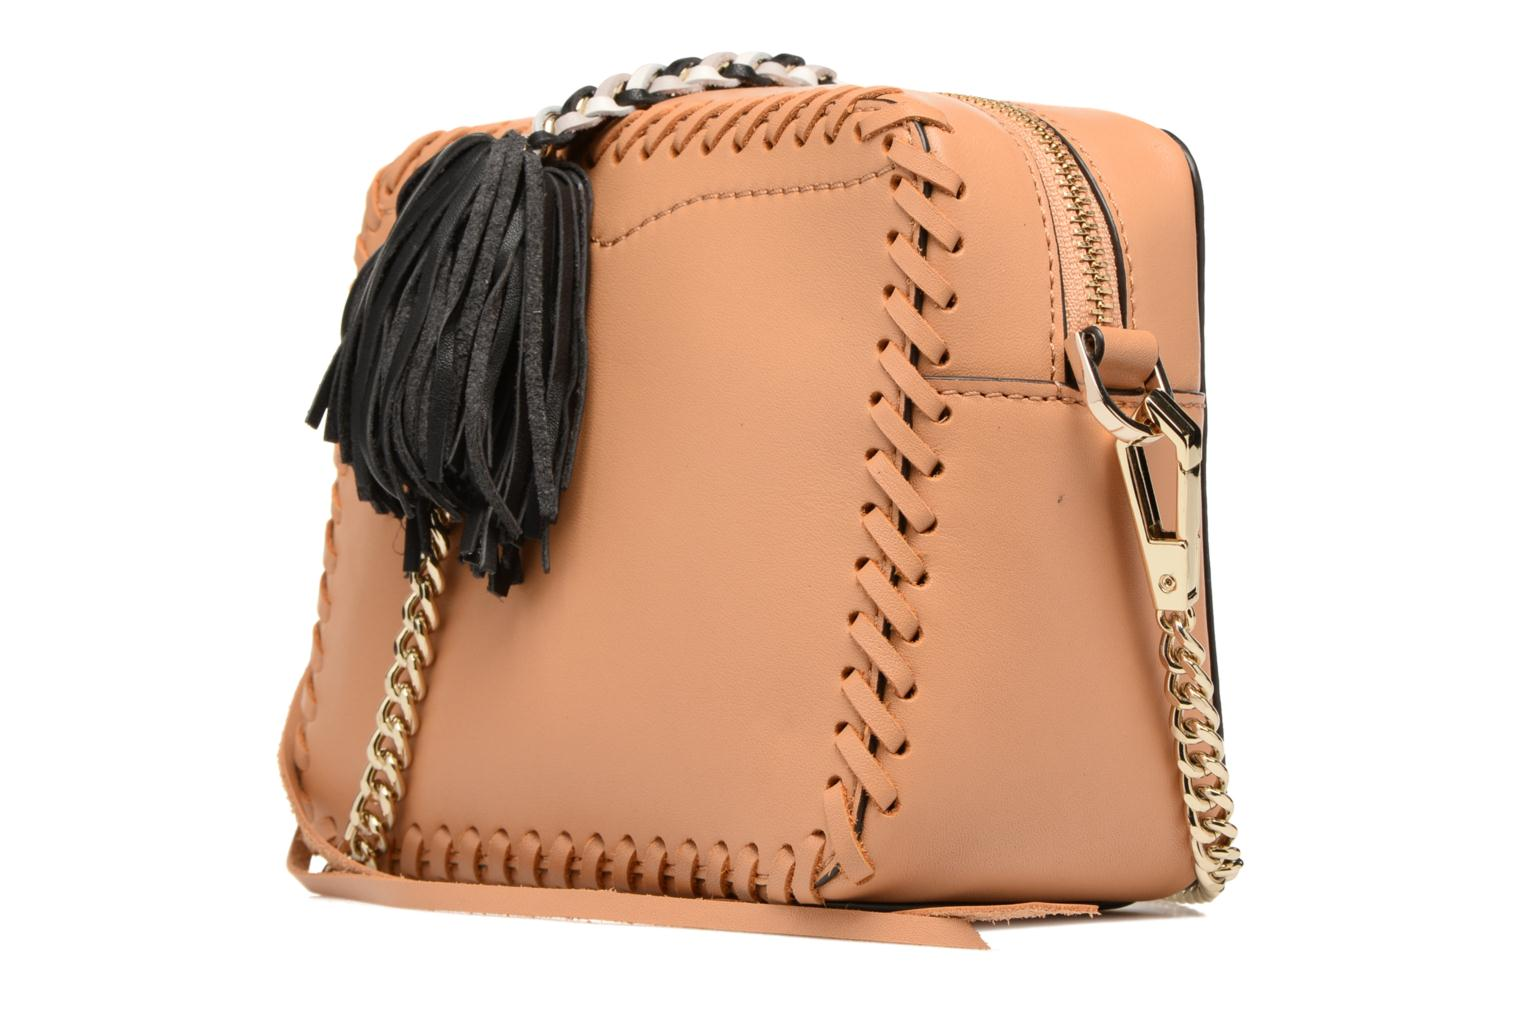 CHASE CAMERA CROSSBODY SAND MULTI 868